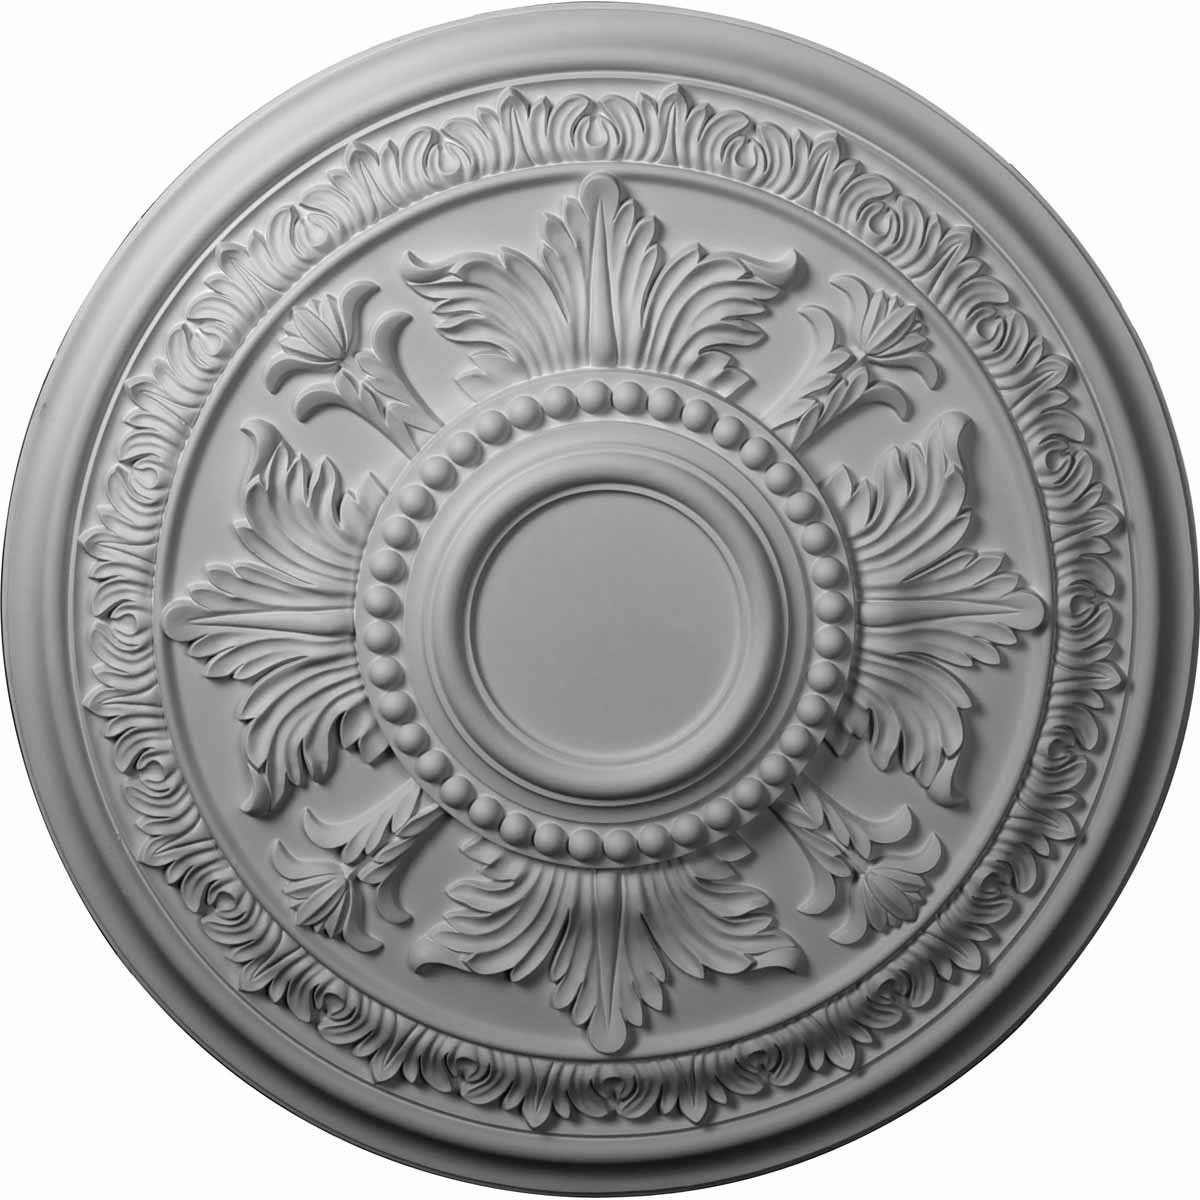 """EM-CM30TE - 30 5/8""""OD x 2 1/2""""P Tellson Ceiling Medallion (Fits Canopies up to 6 3/4"""")"""